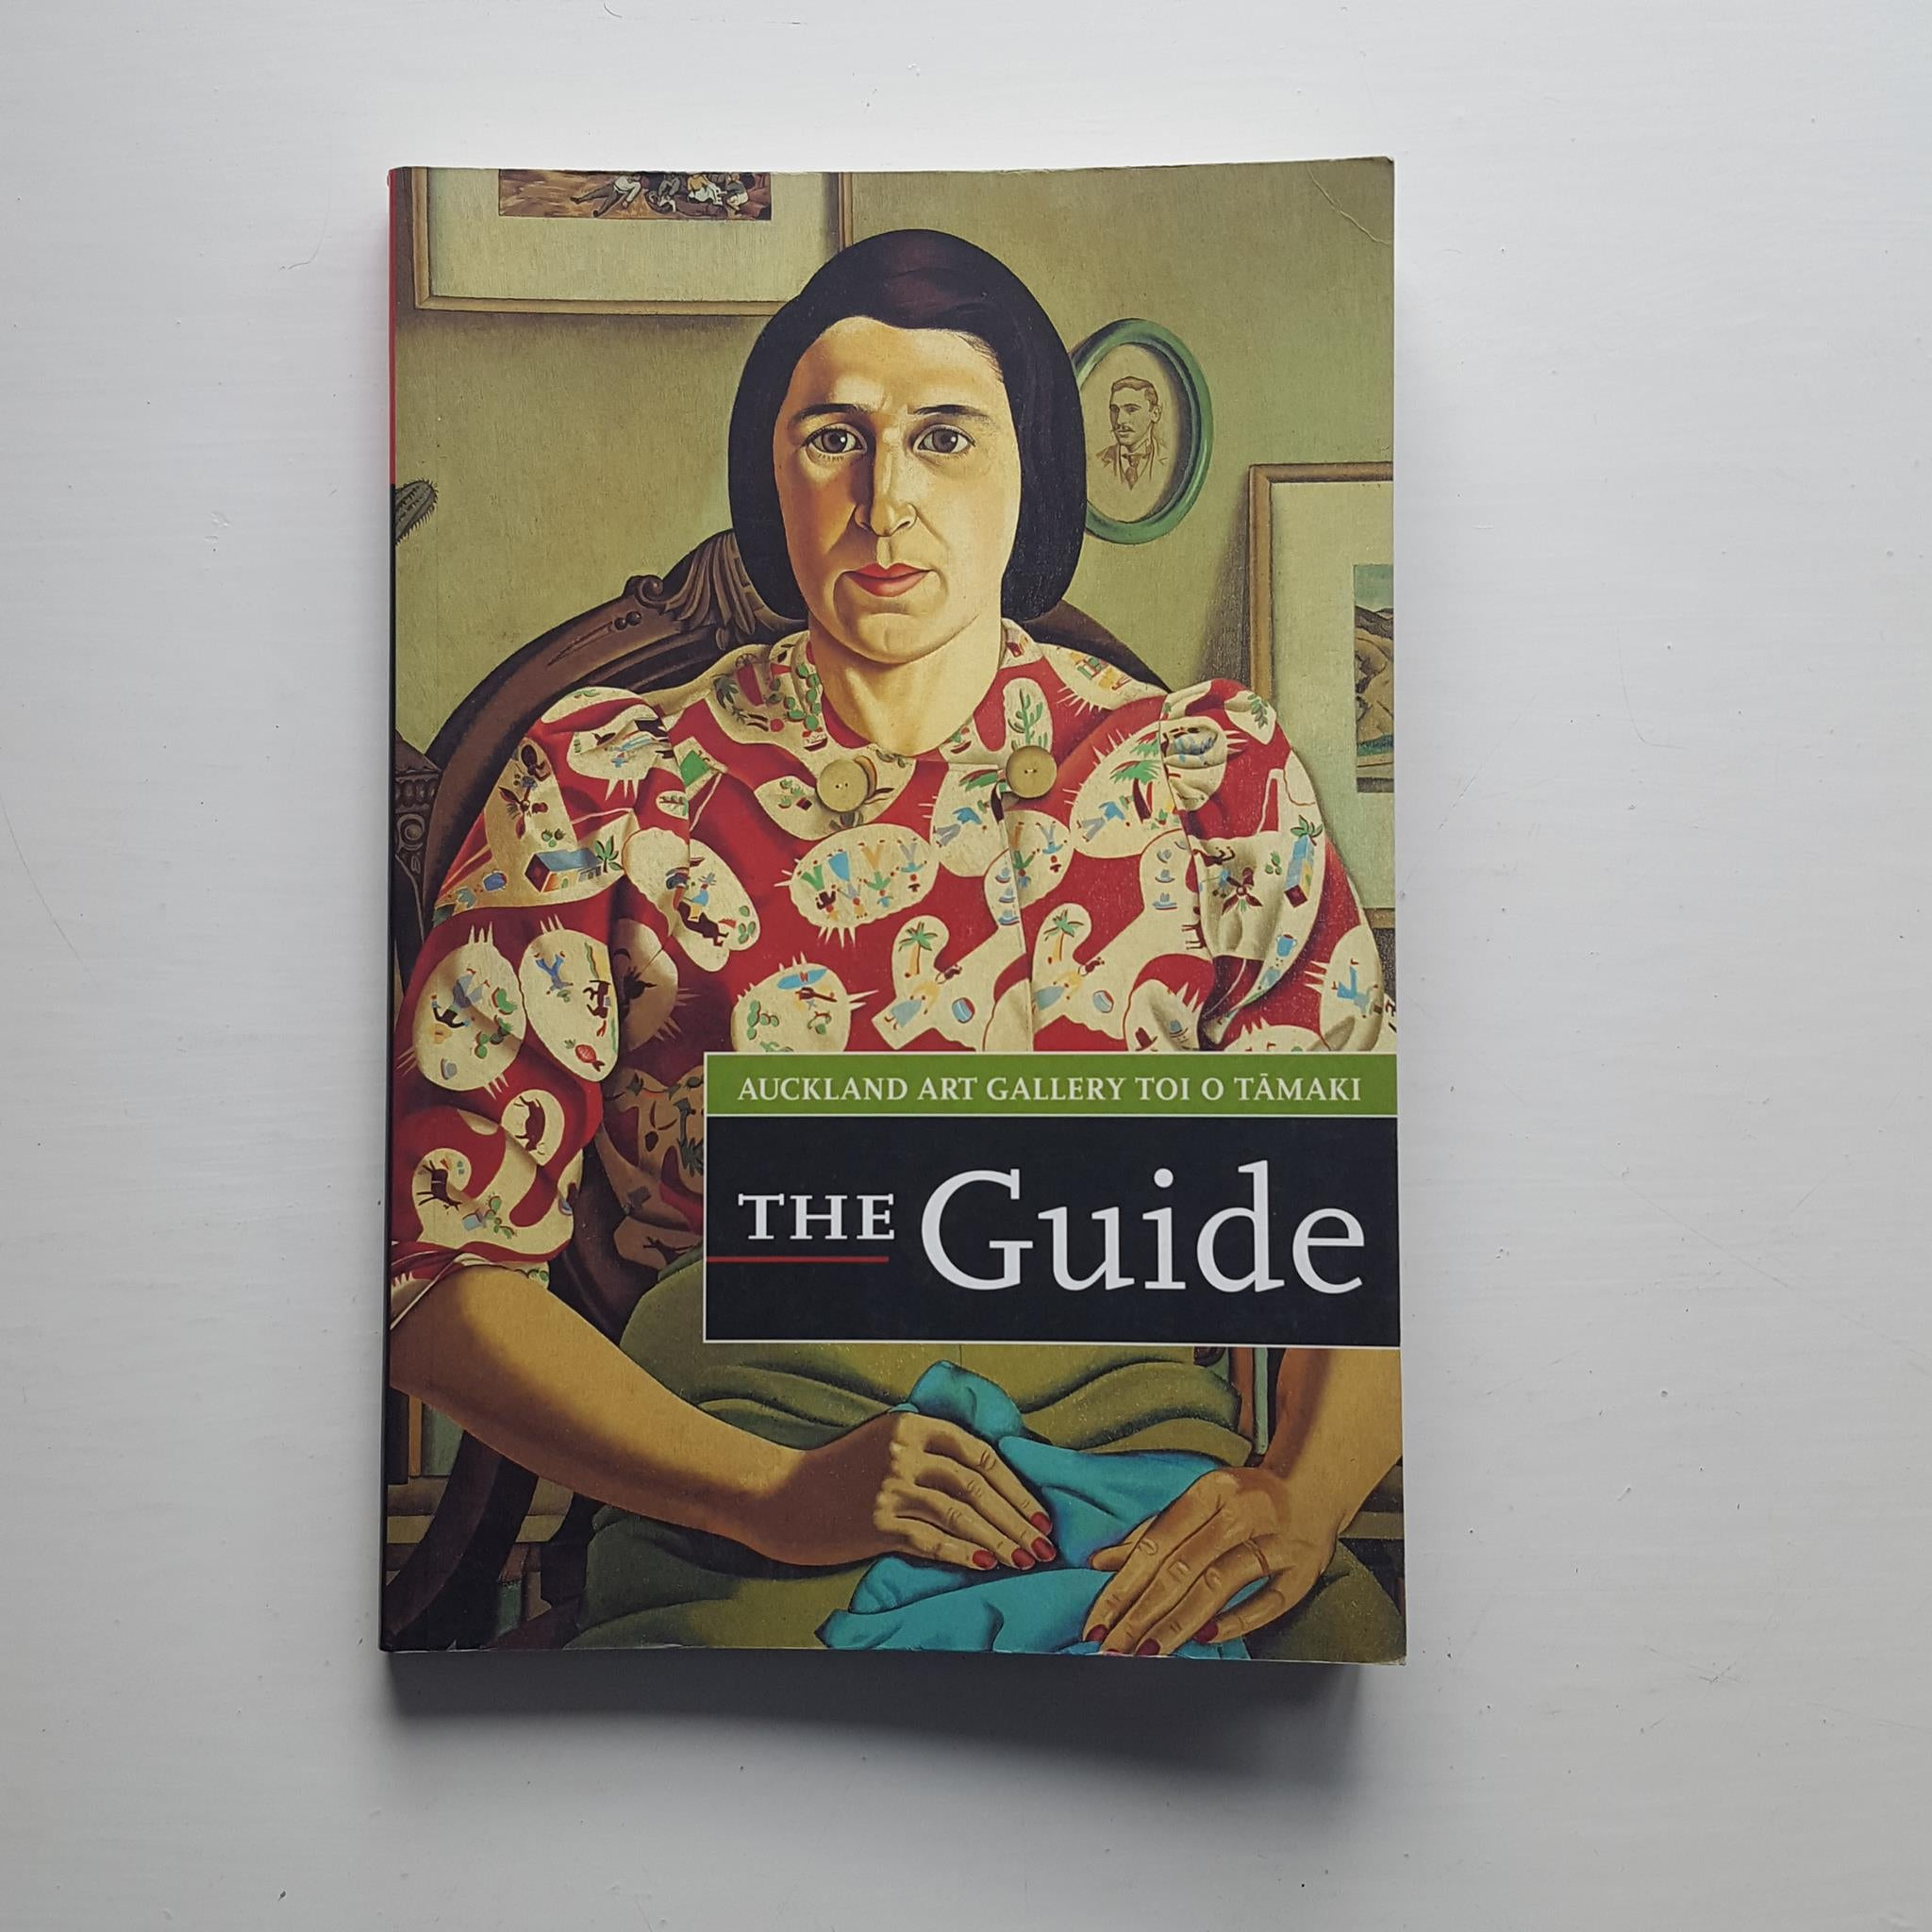 Auckland Art Gallery Toi O Tamaki: The Guide by Auckland Art Gallery